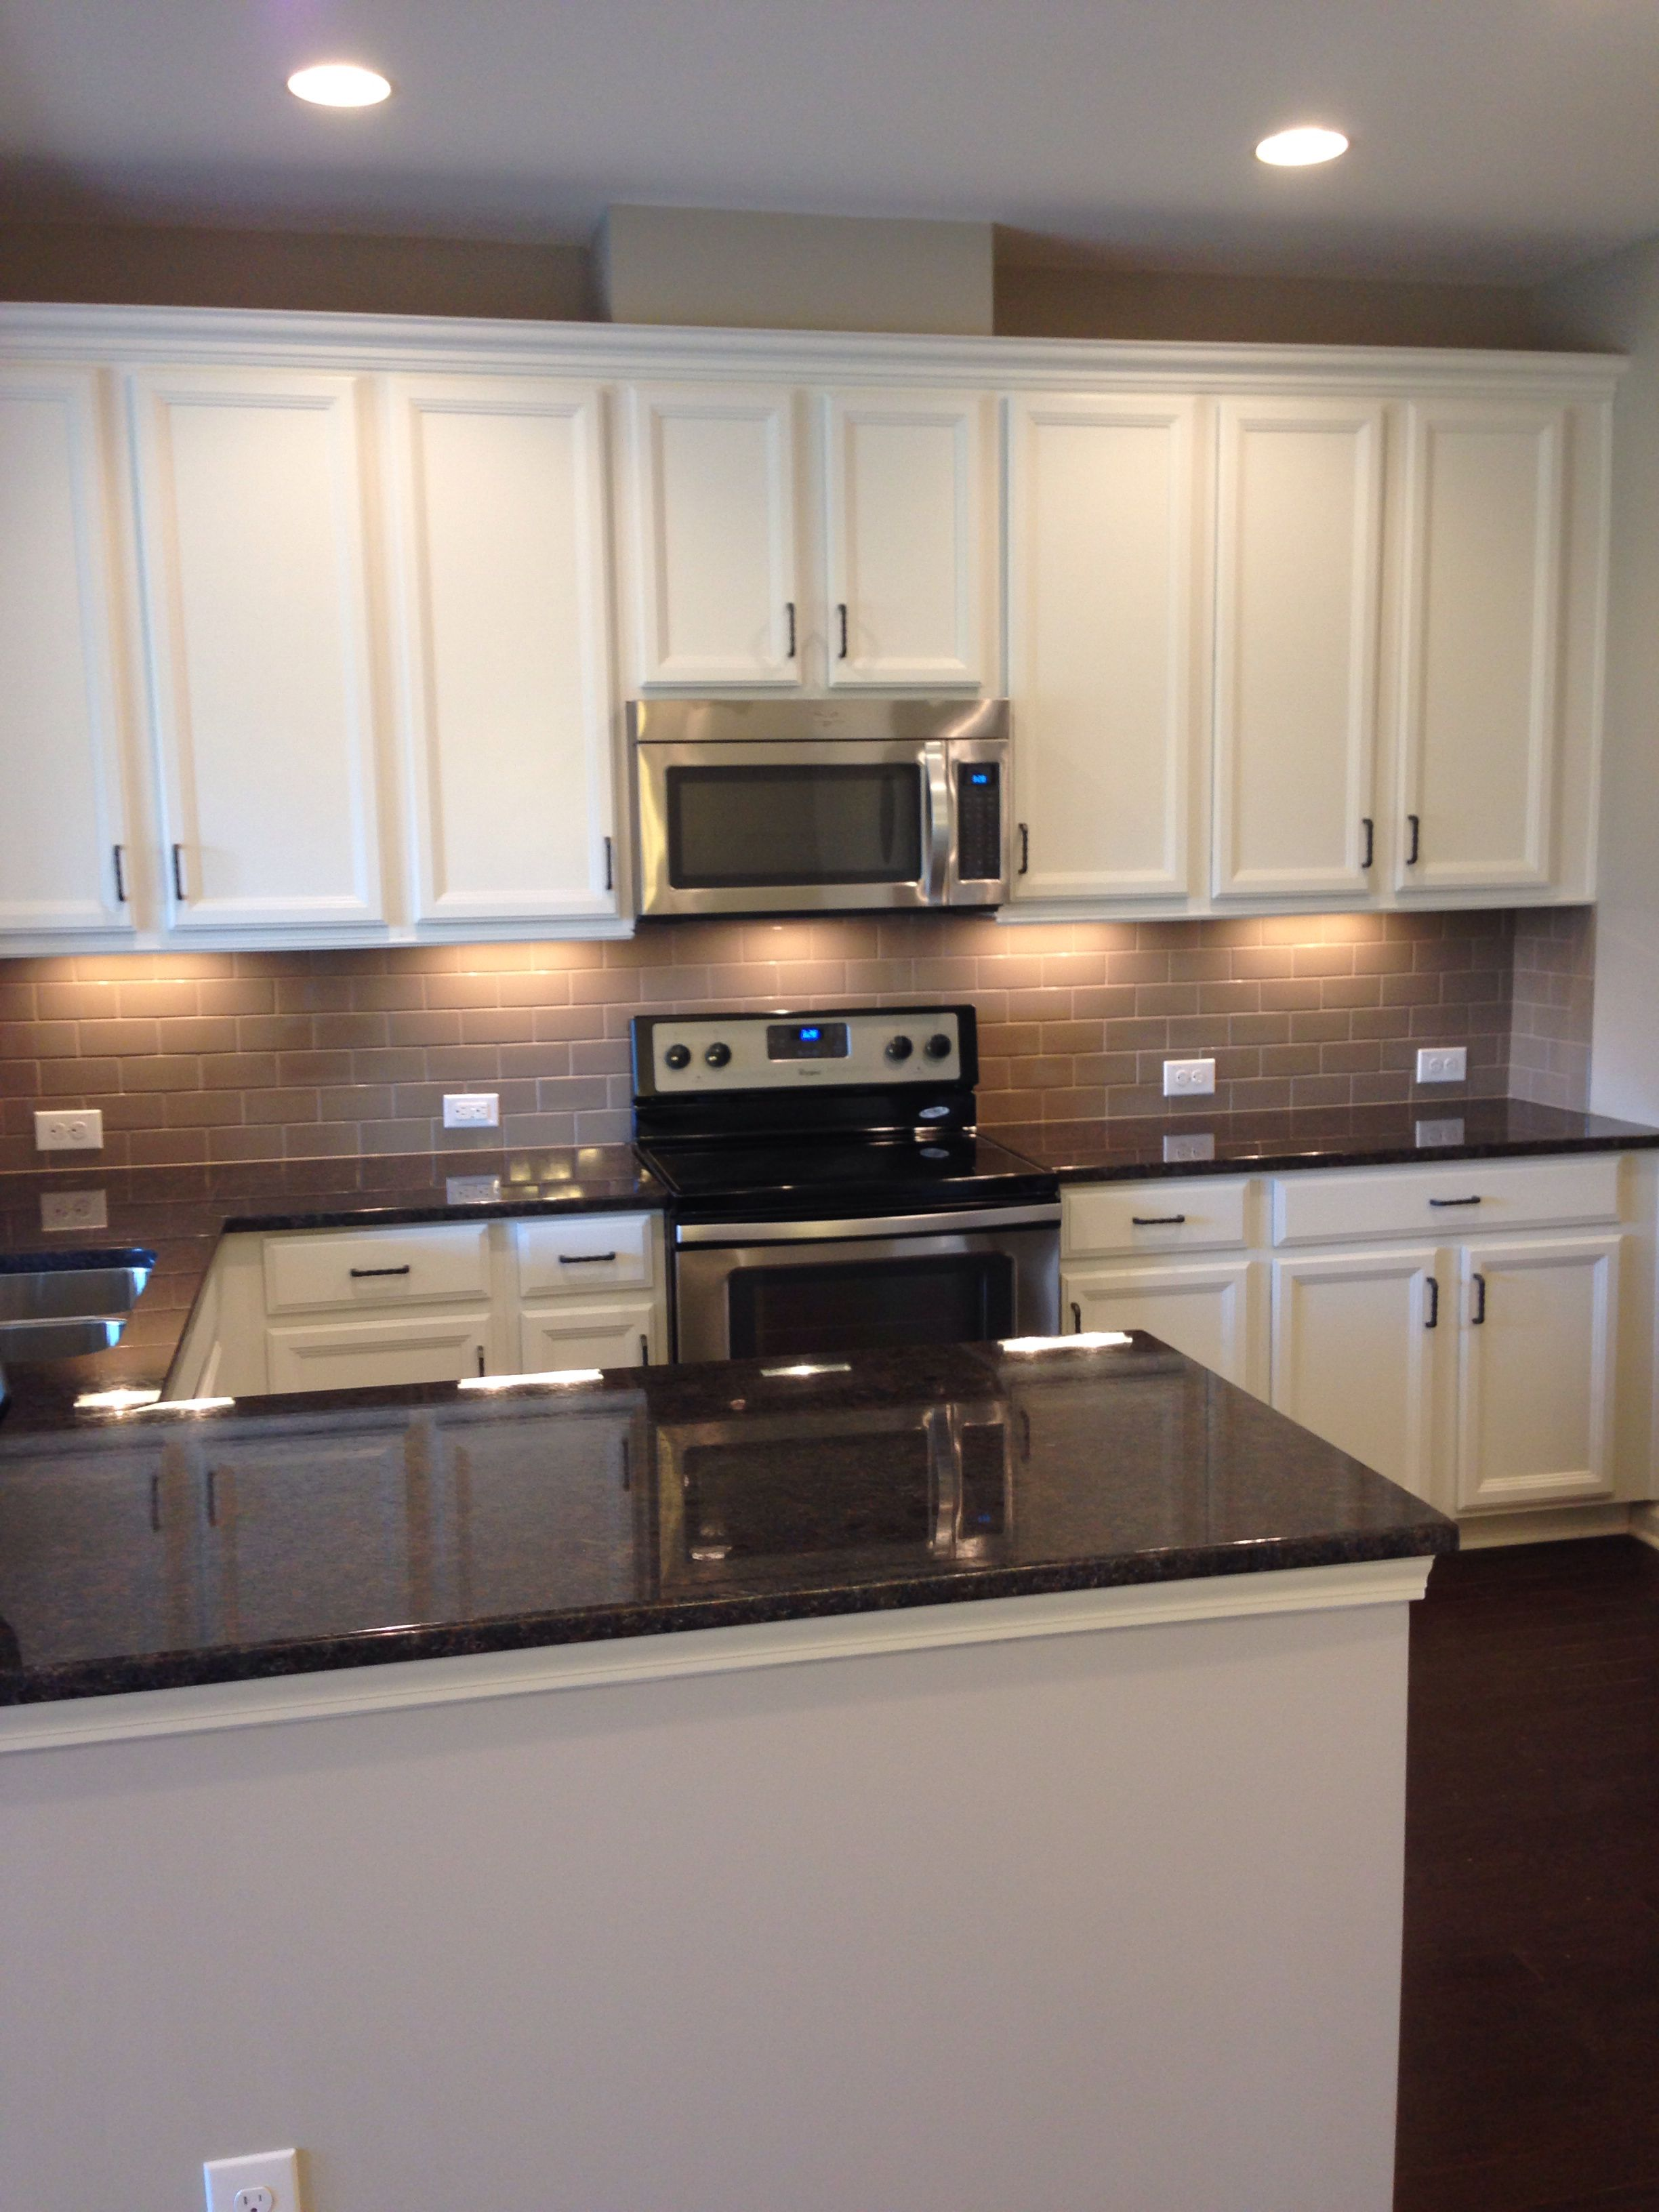 My new kitchen! White cabinets, tan subway tile backsplash ... on Backsplash For Black Granite Countertops And White Cabinets  id=90392